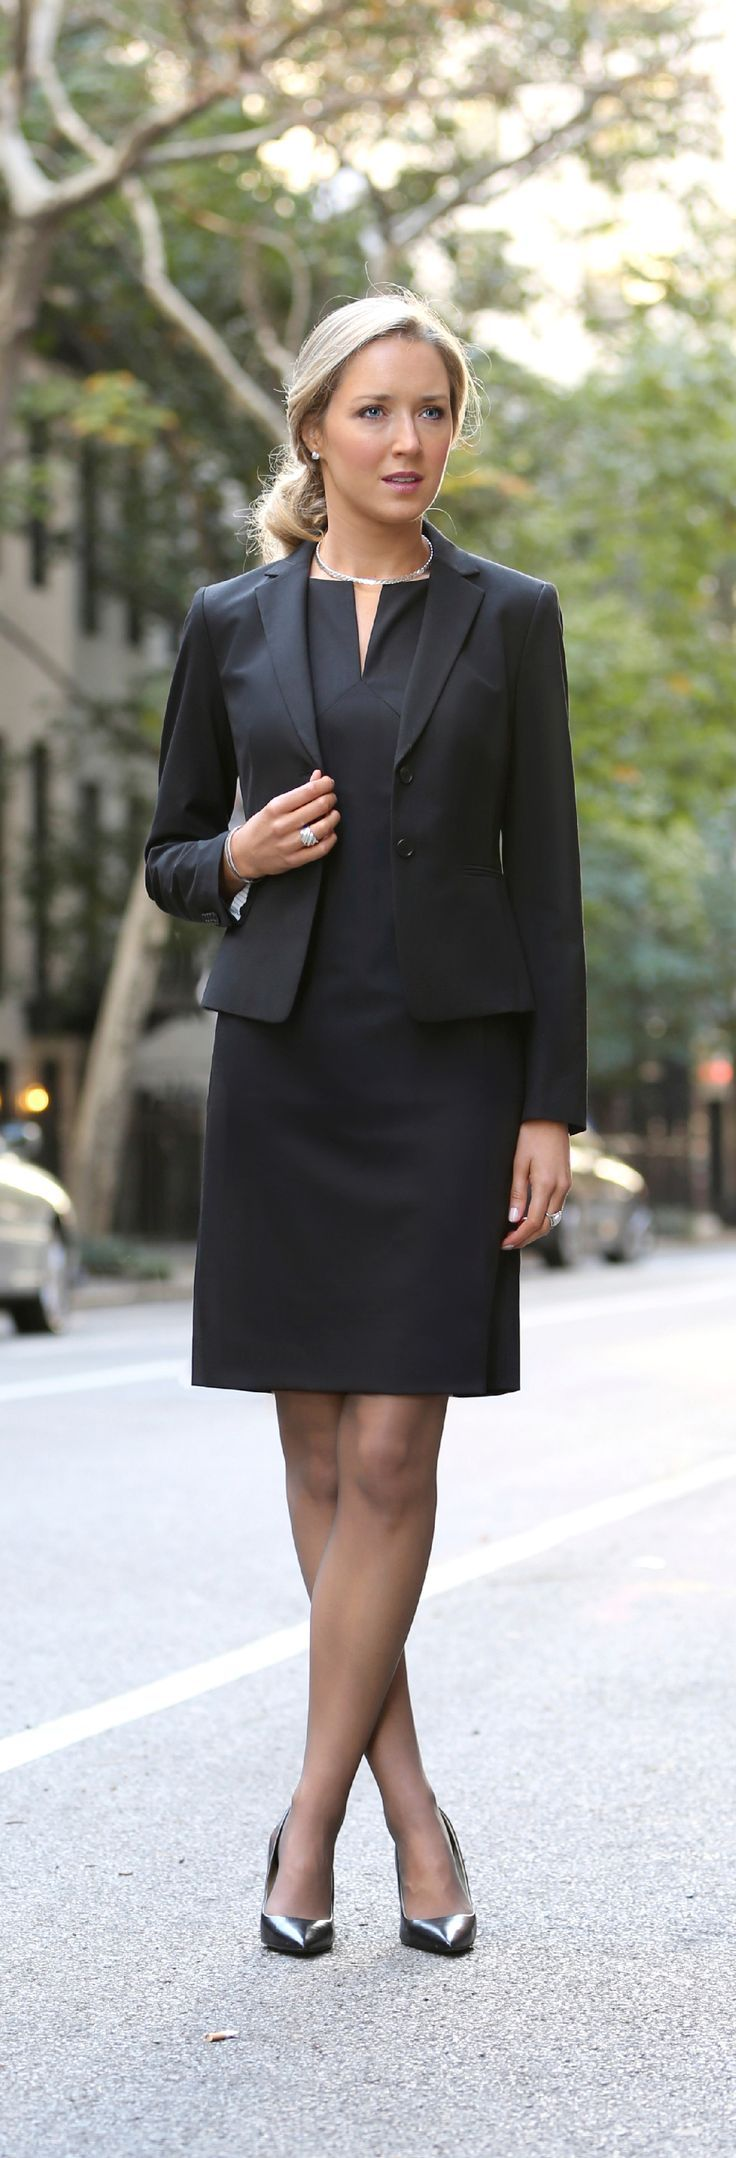 corporate business attire what to wear for women pinterest. Black Bedroom Furniture Sets. Home Design Ideas